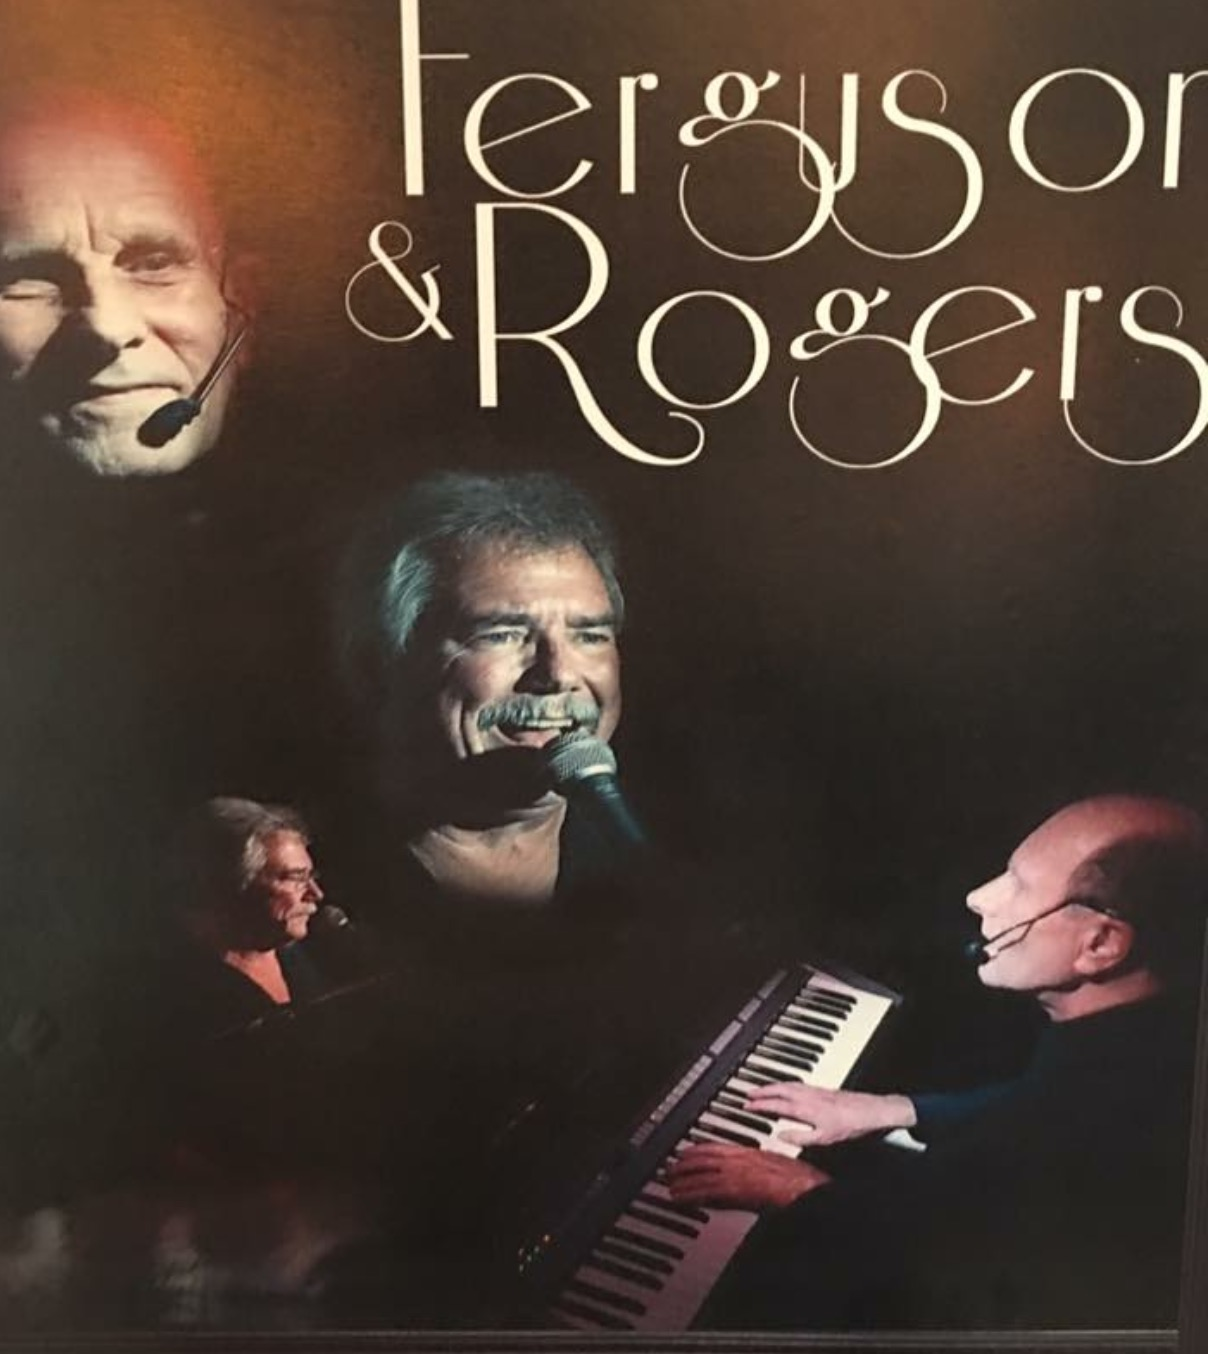 Ferguson & Rogers Advertisement. Collage of them playing keyboard and singing.